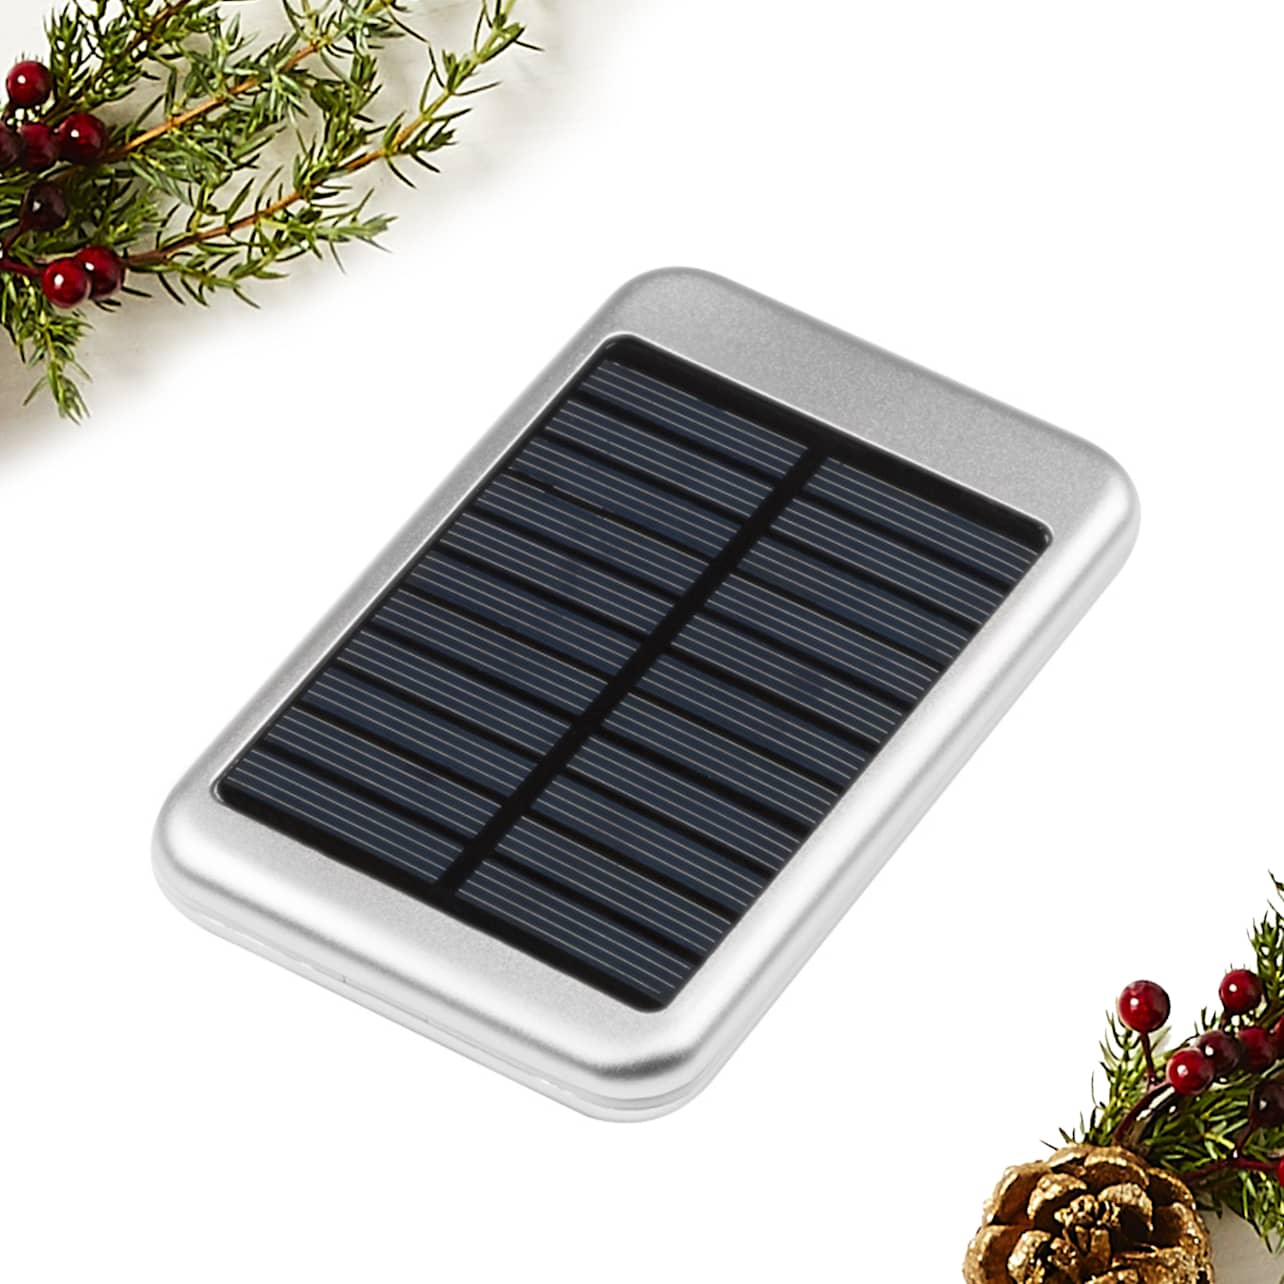 Solar phone charger employee gift idea